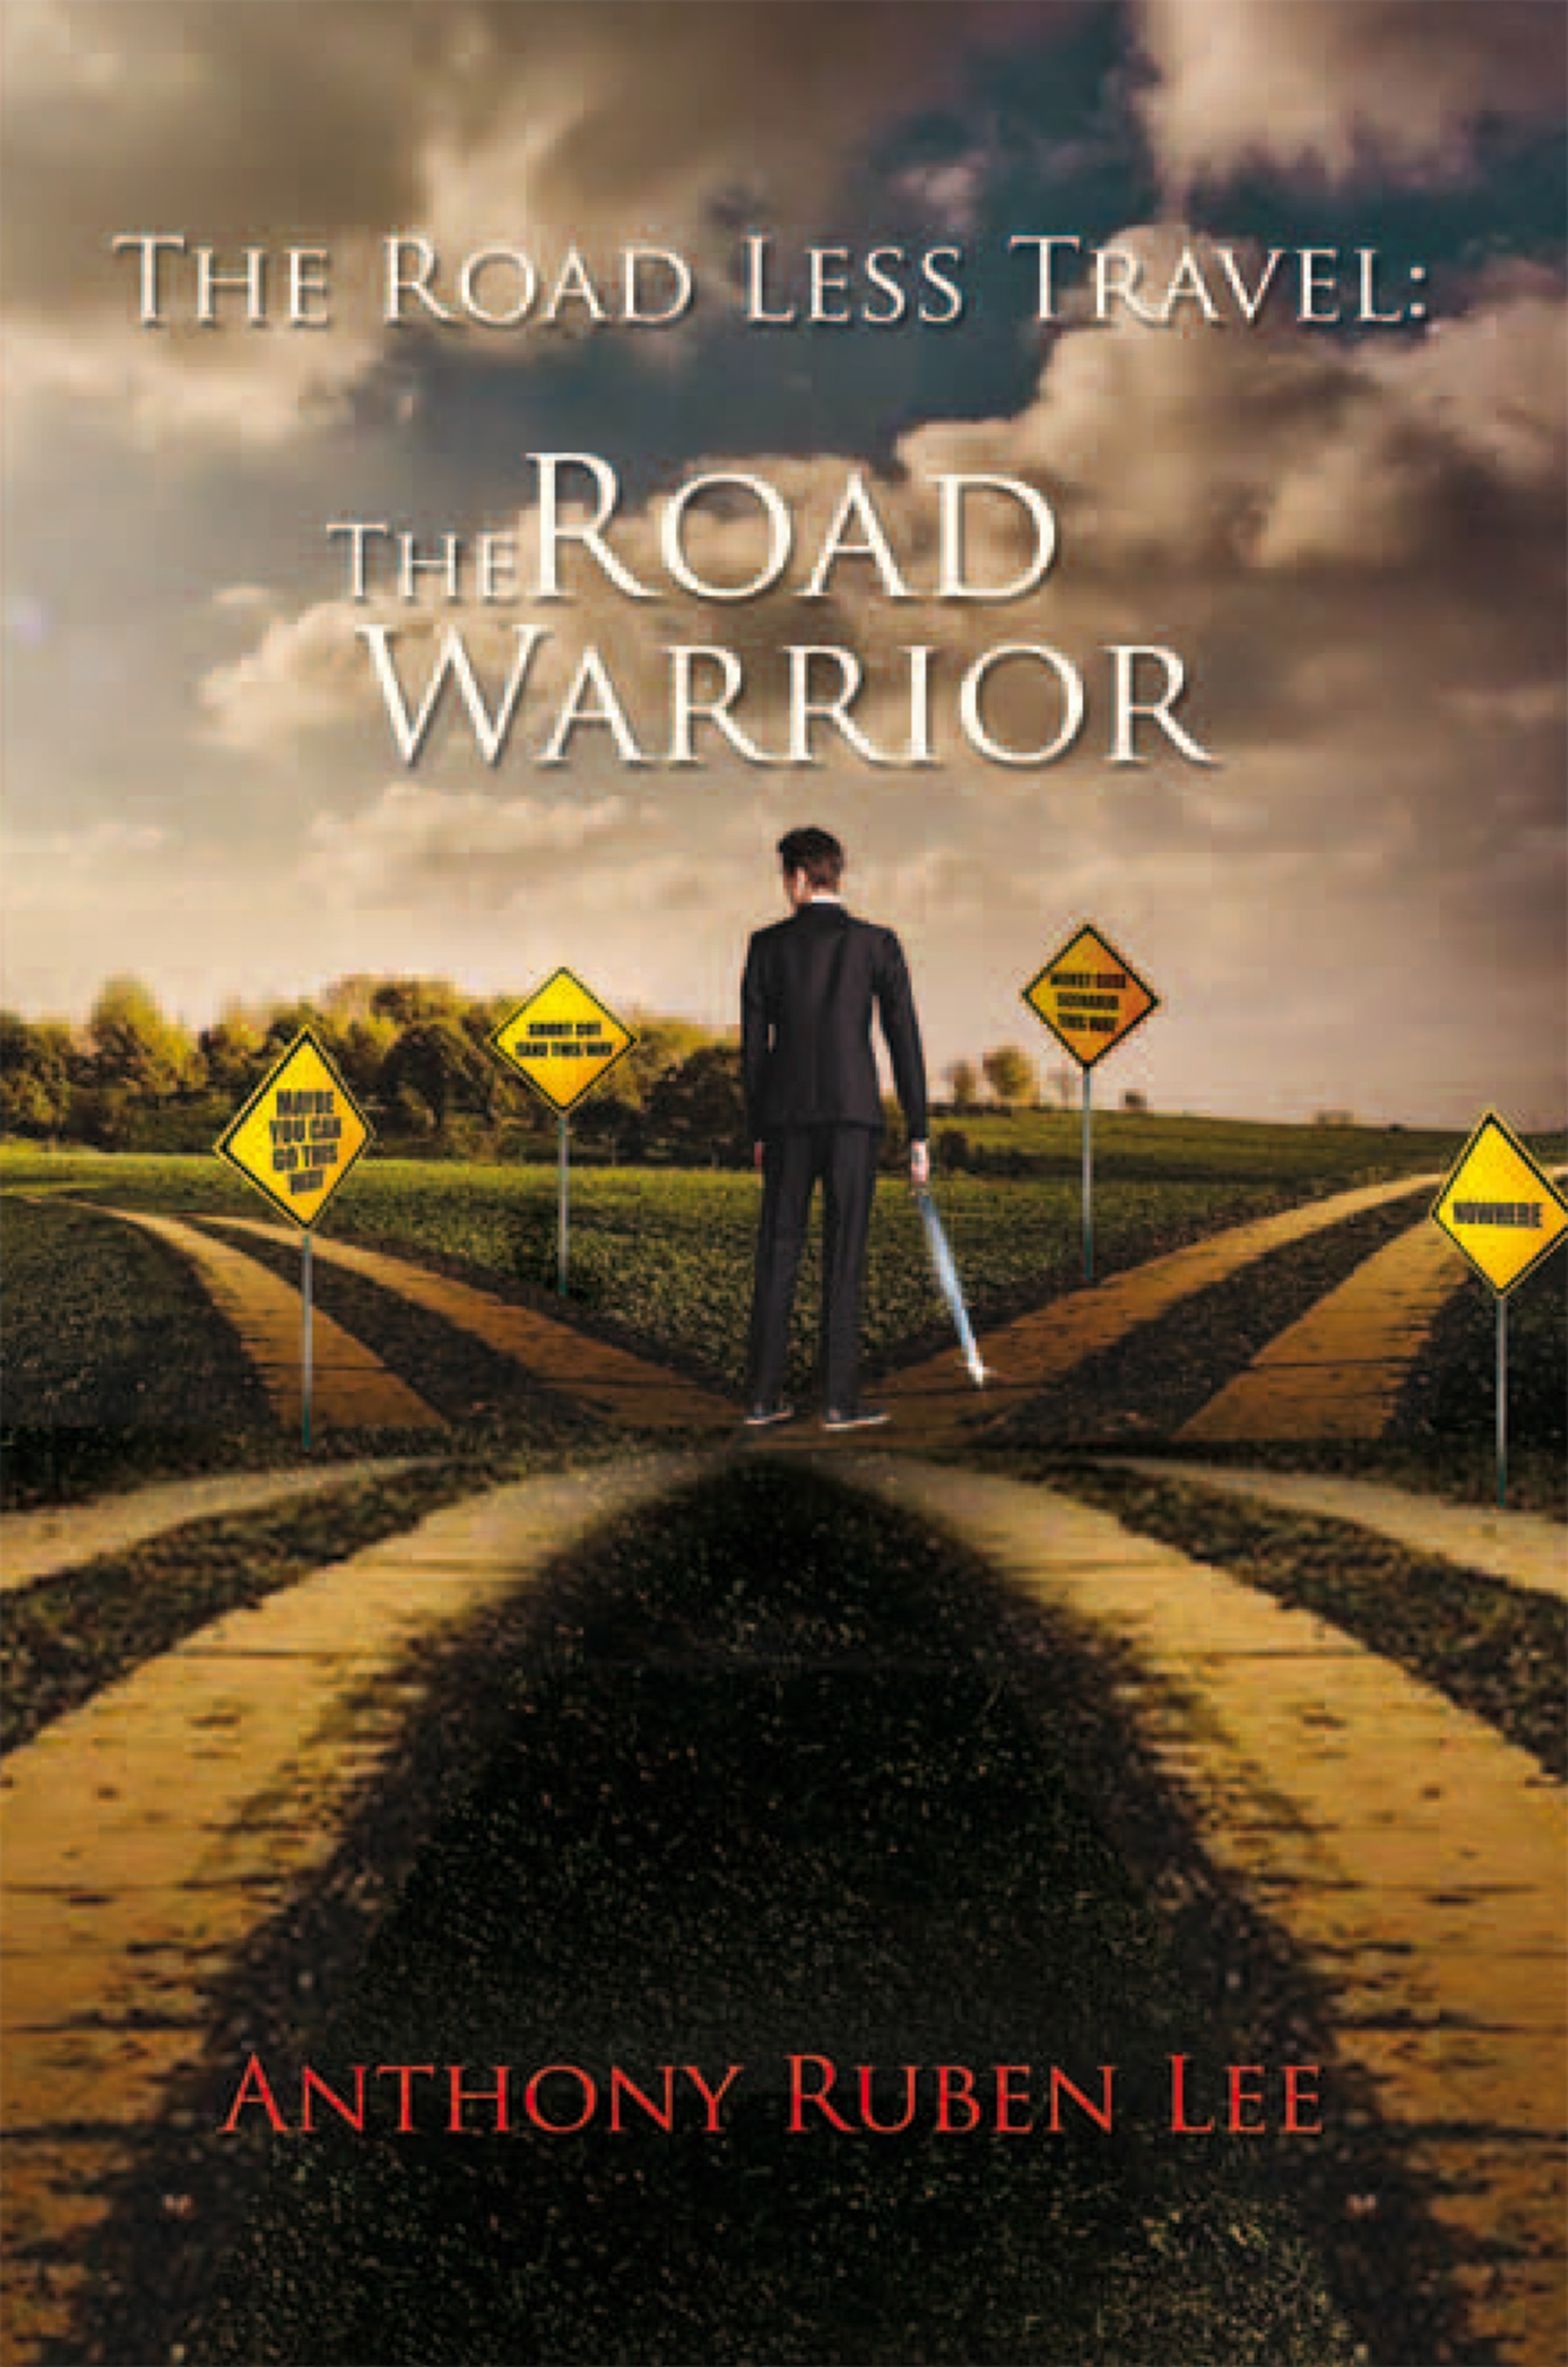 The Road Less Travel: The Road Warrior